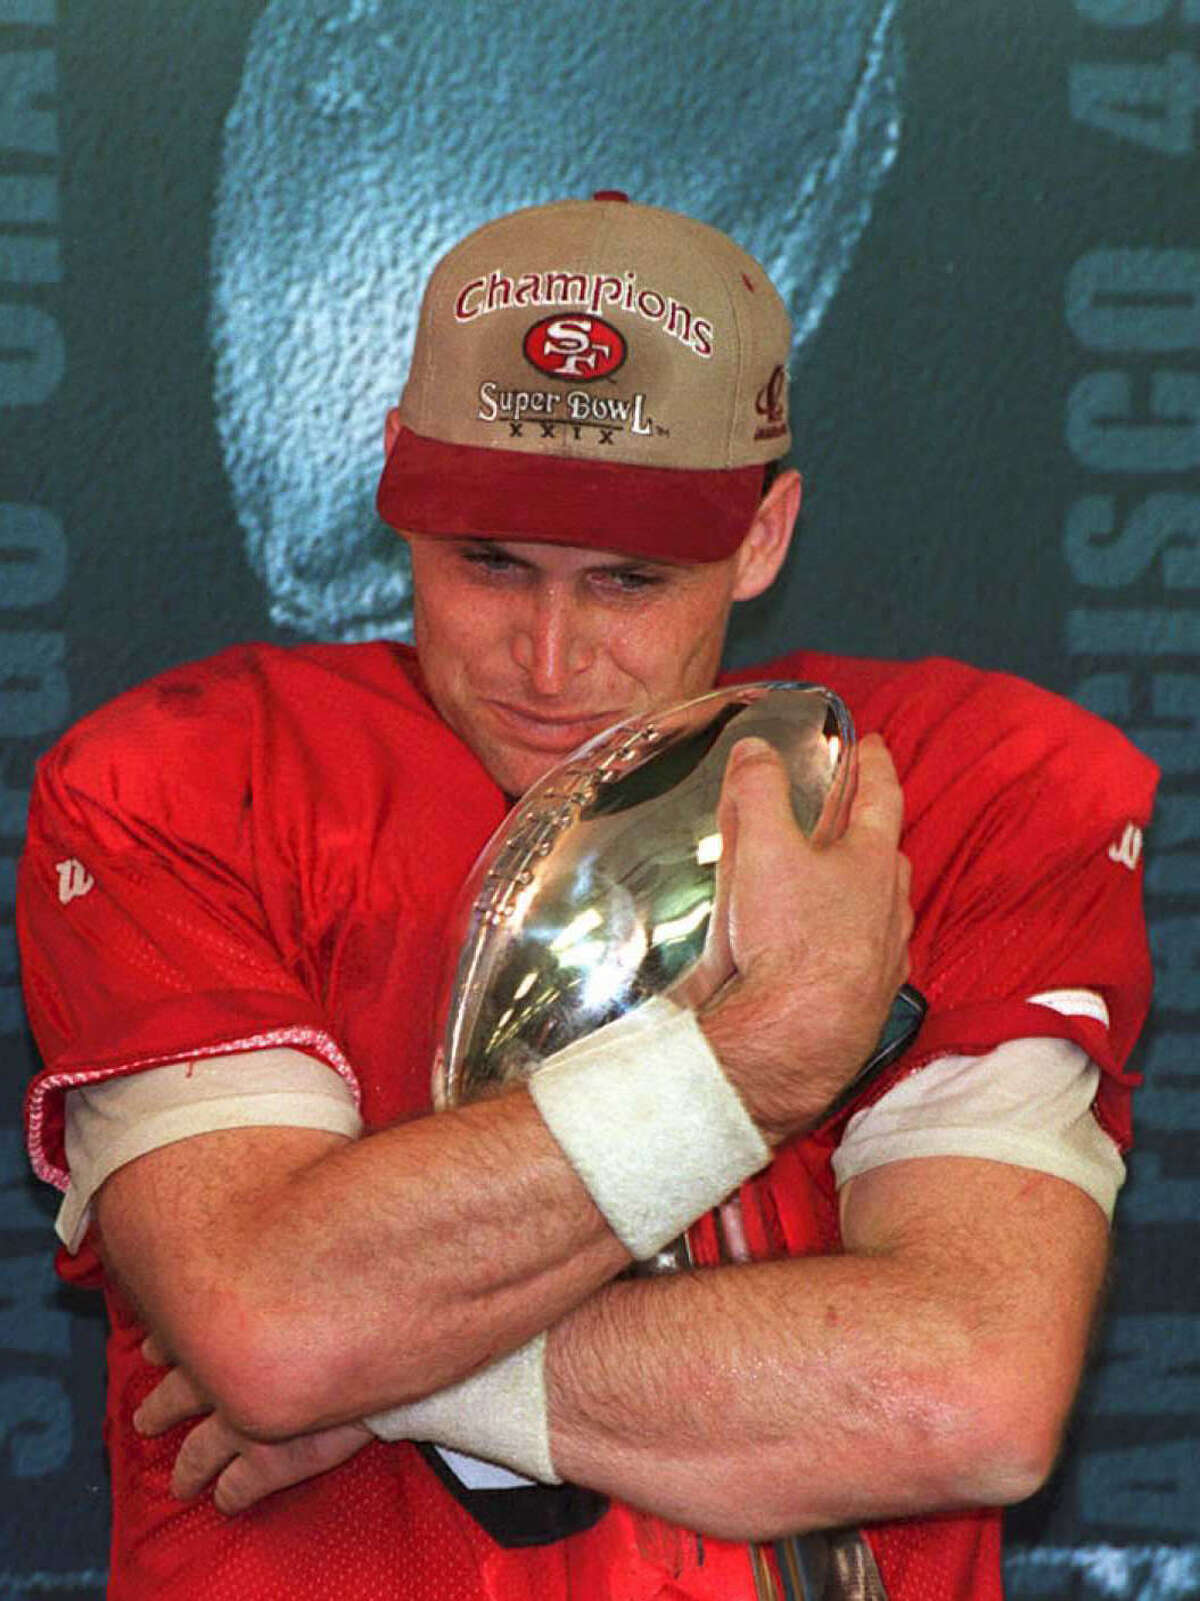 MIAMI, FL - JANUARY 29: San Francisco 49ers quarterback Steve Young hugs the Vince Lombardi trophy 29 January 1995 after being named the Most Valuable Player of Super Bowl XXIX. Young threw a record six touchdown passes as the 49ers defeated the San Diego Chargers 49-26 and became the first team to win five Super Bowls. (COLOR KEY: Jersey is red.) AFP PHOTO (Photo credit should read Roberto SCHIMDT/AFP/Getty Images)